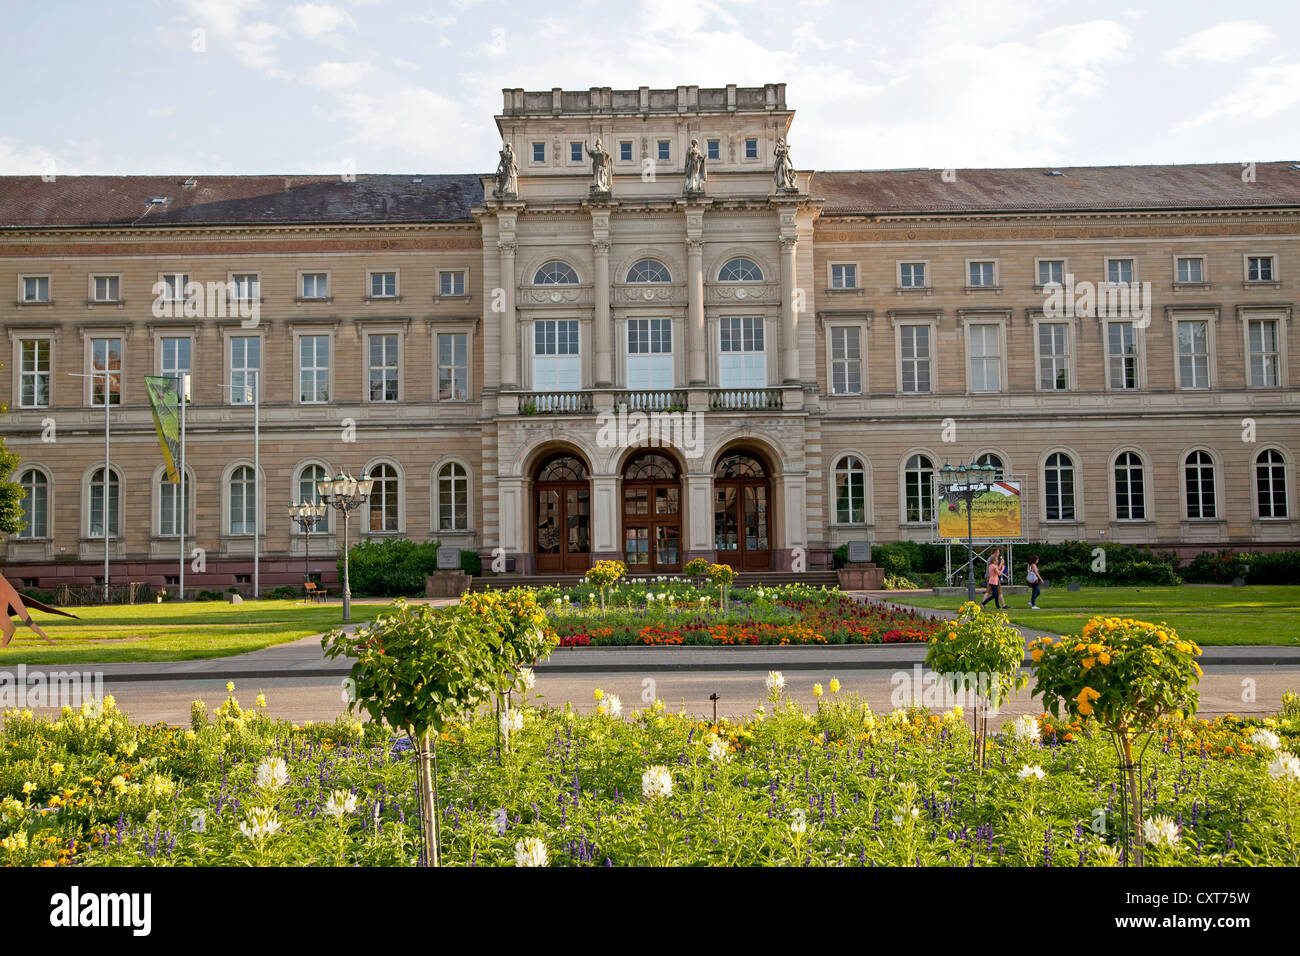 State Museum of Natural History, Karlsruhe, Baden-Wuerttemberg - Stock Image